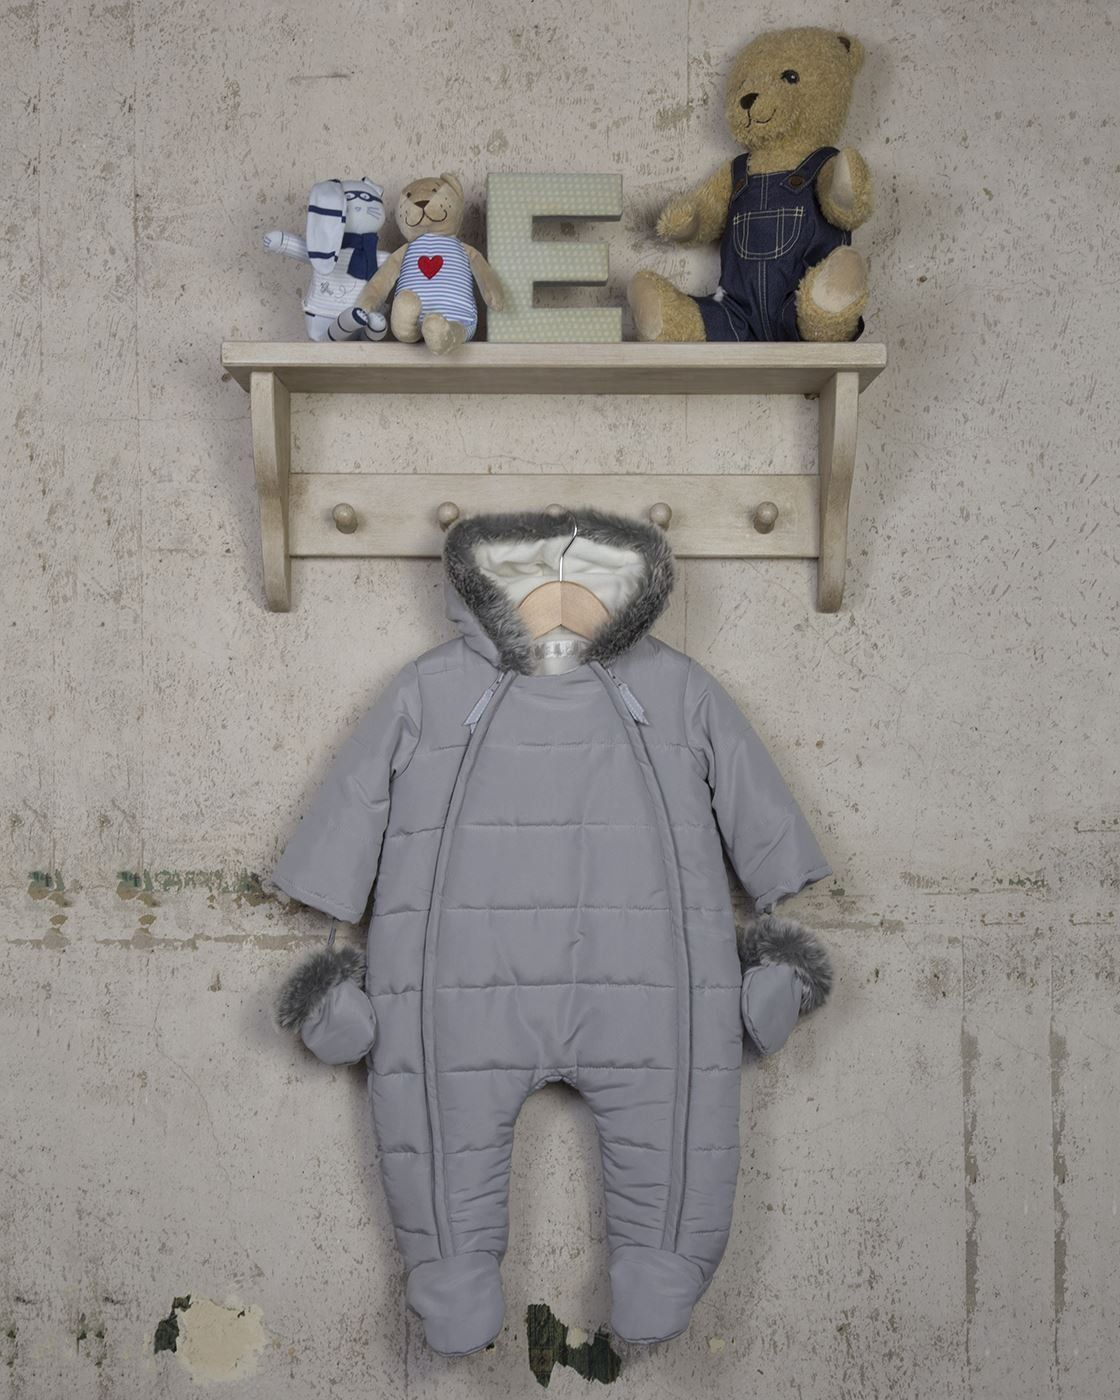 bd995af32 The Essential One Unisex Baby Snowsuit 36 Months Grey   Click the ...